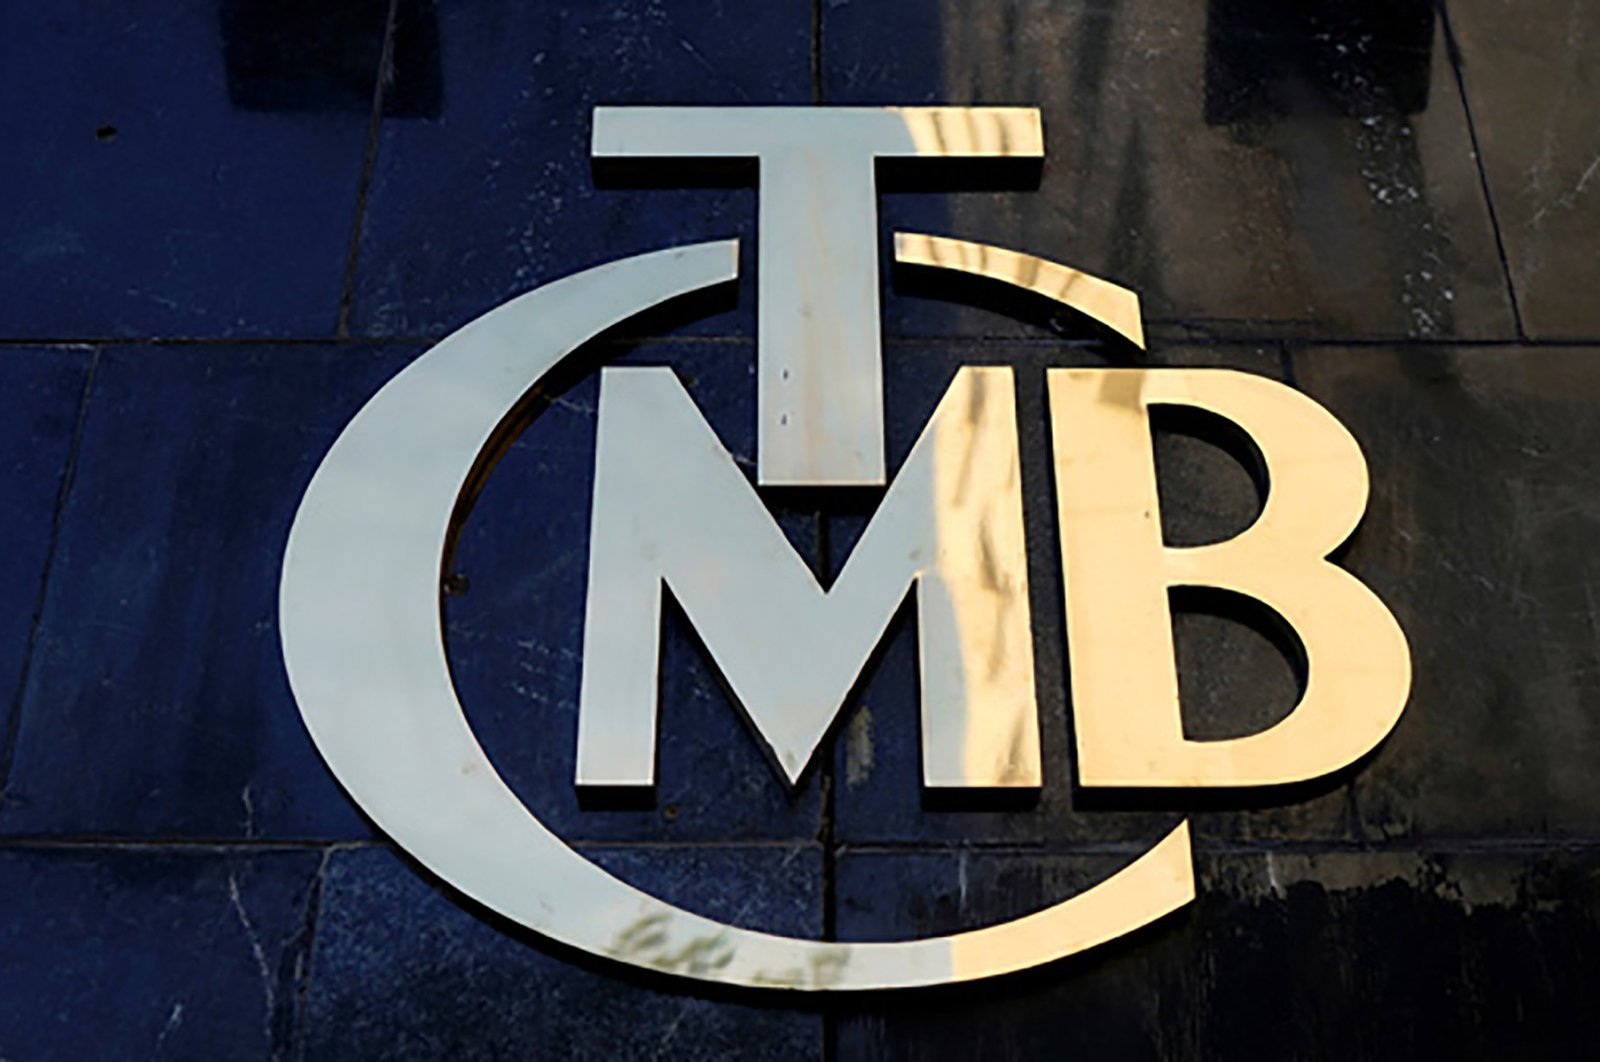 A logo of Turkey's Central Bank (TCMB) is pictured at the entrance of the bank's headquarters in Ankara, Turkey, April 19, 2015. (Reuters Photo)